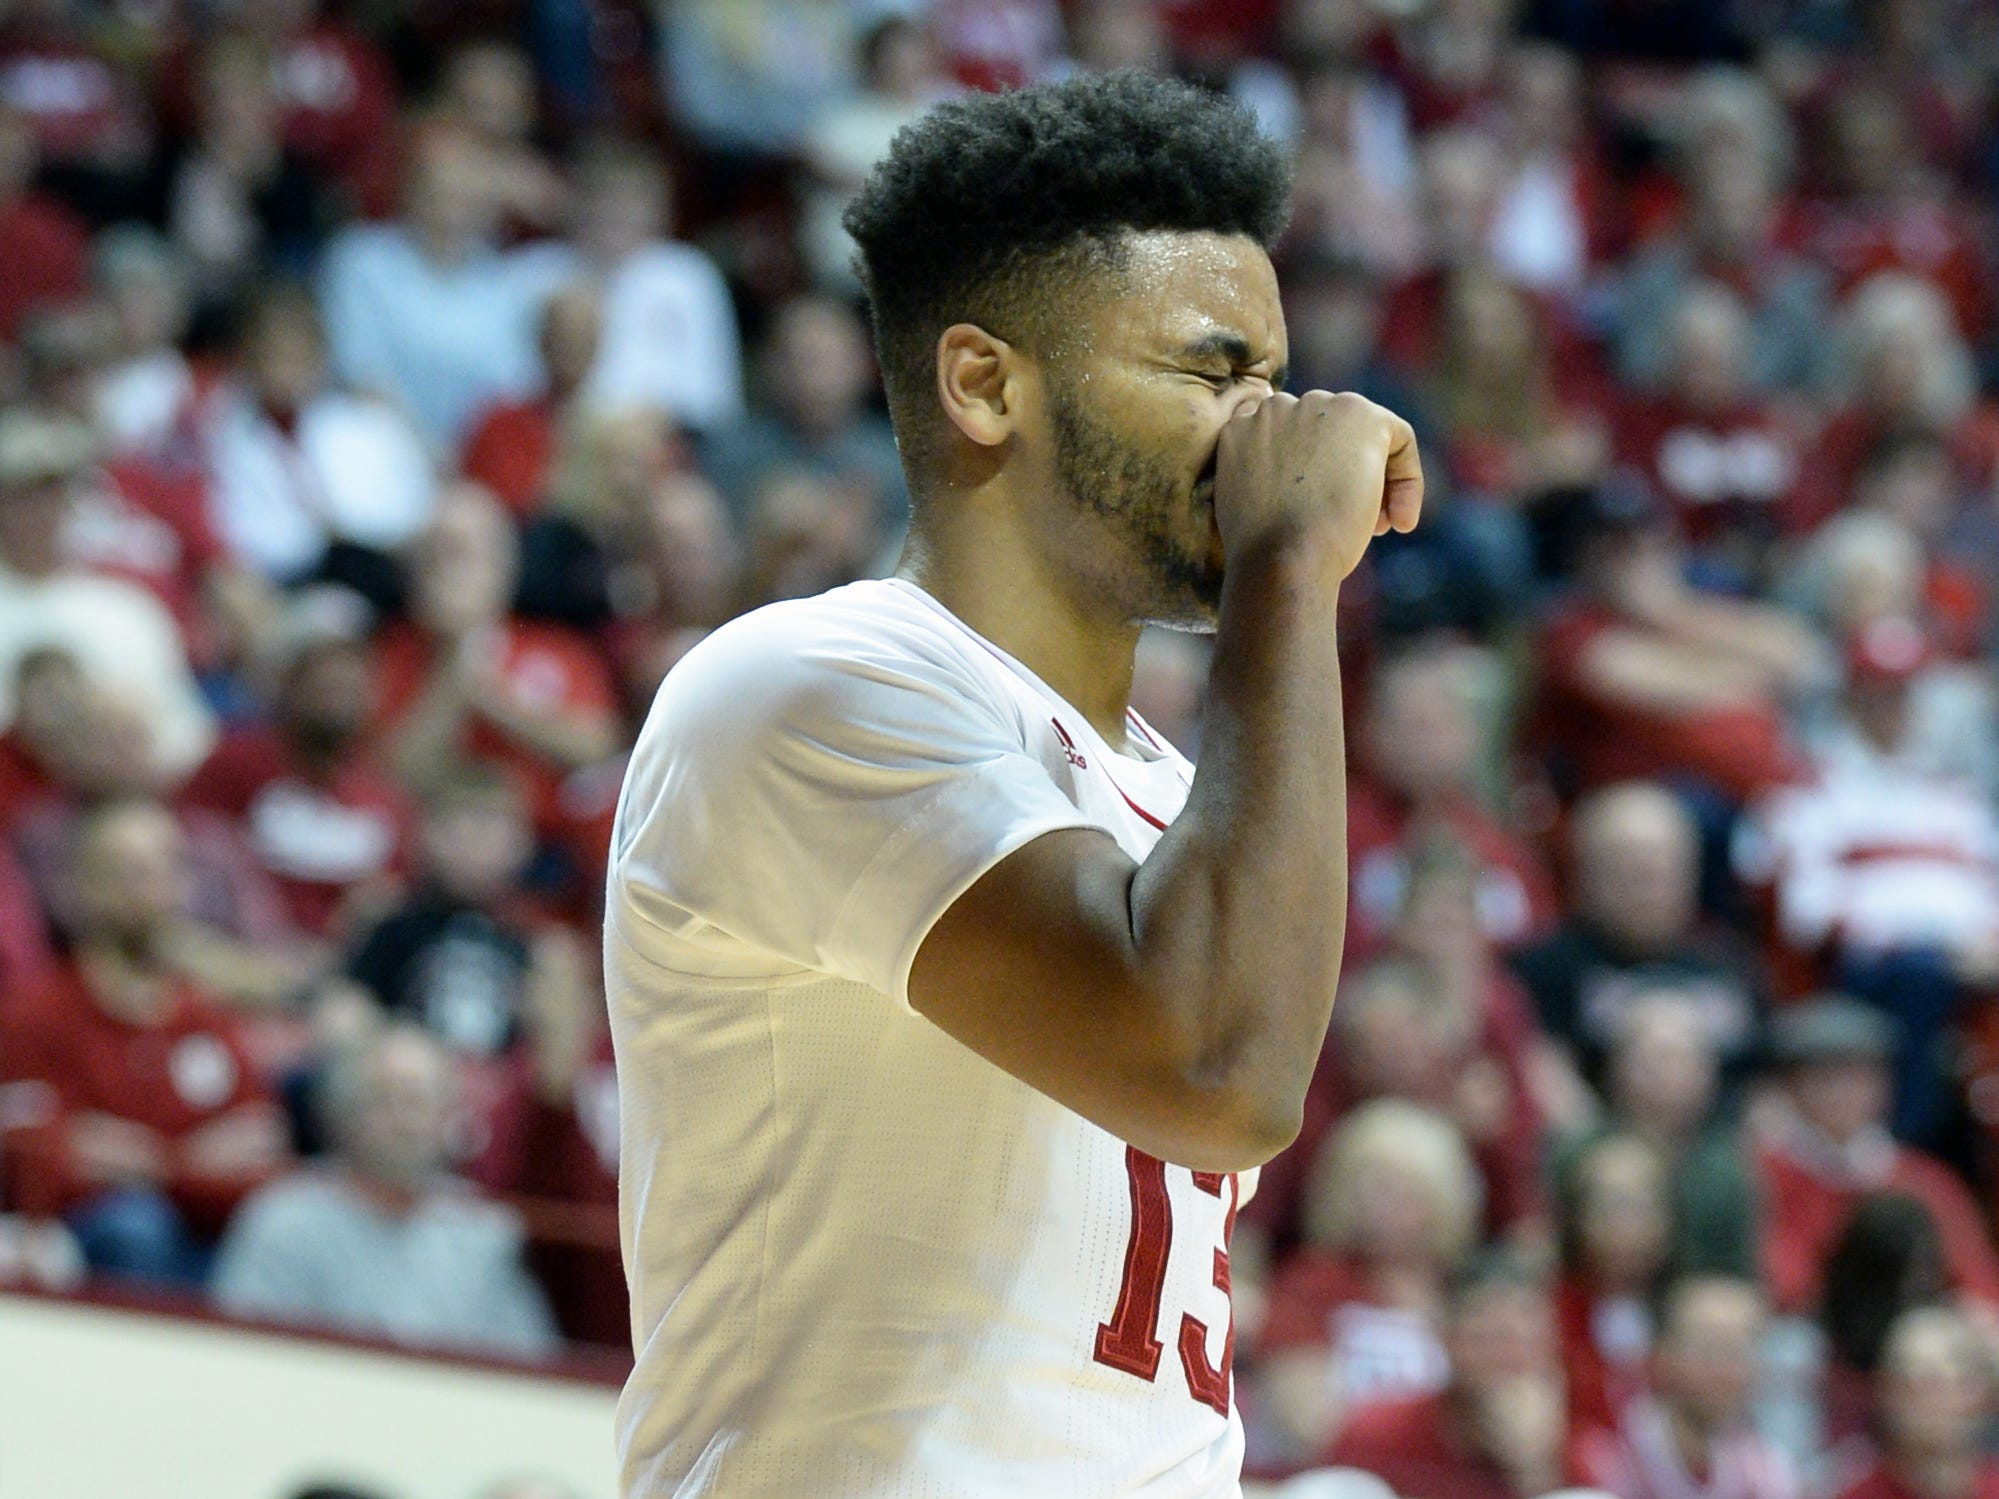 Indiana Hoosiers forward Juwan Morgan (13) rubs his face after being fouled during the game against St. Francis (Pa.) at Simon Skjodt Assembly Hall in Bloomington Ind., on Tuesday, March 19, 2019.